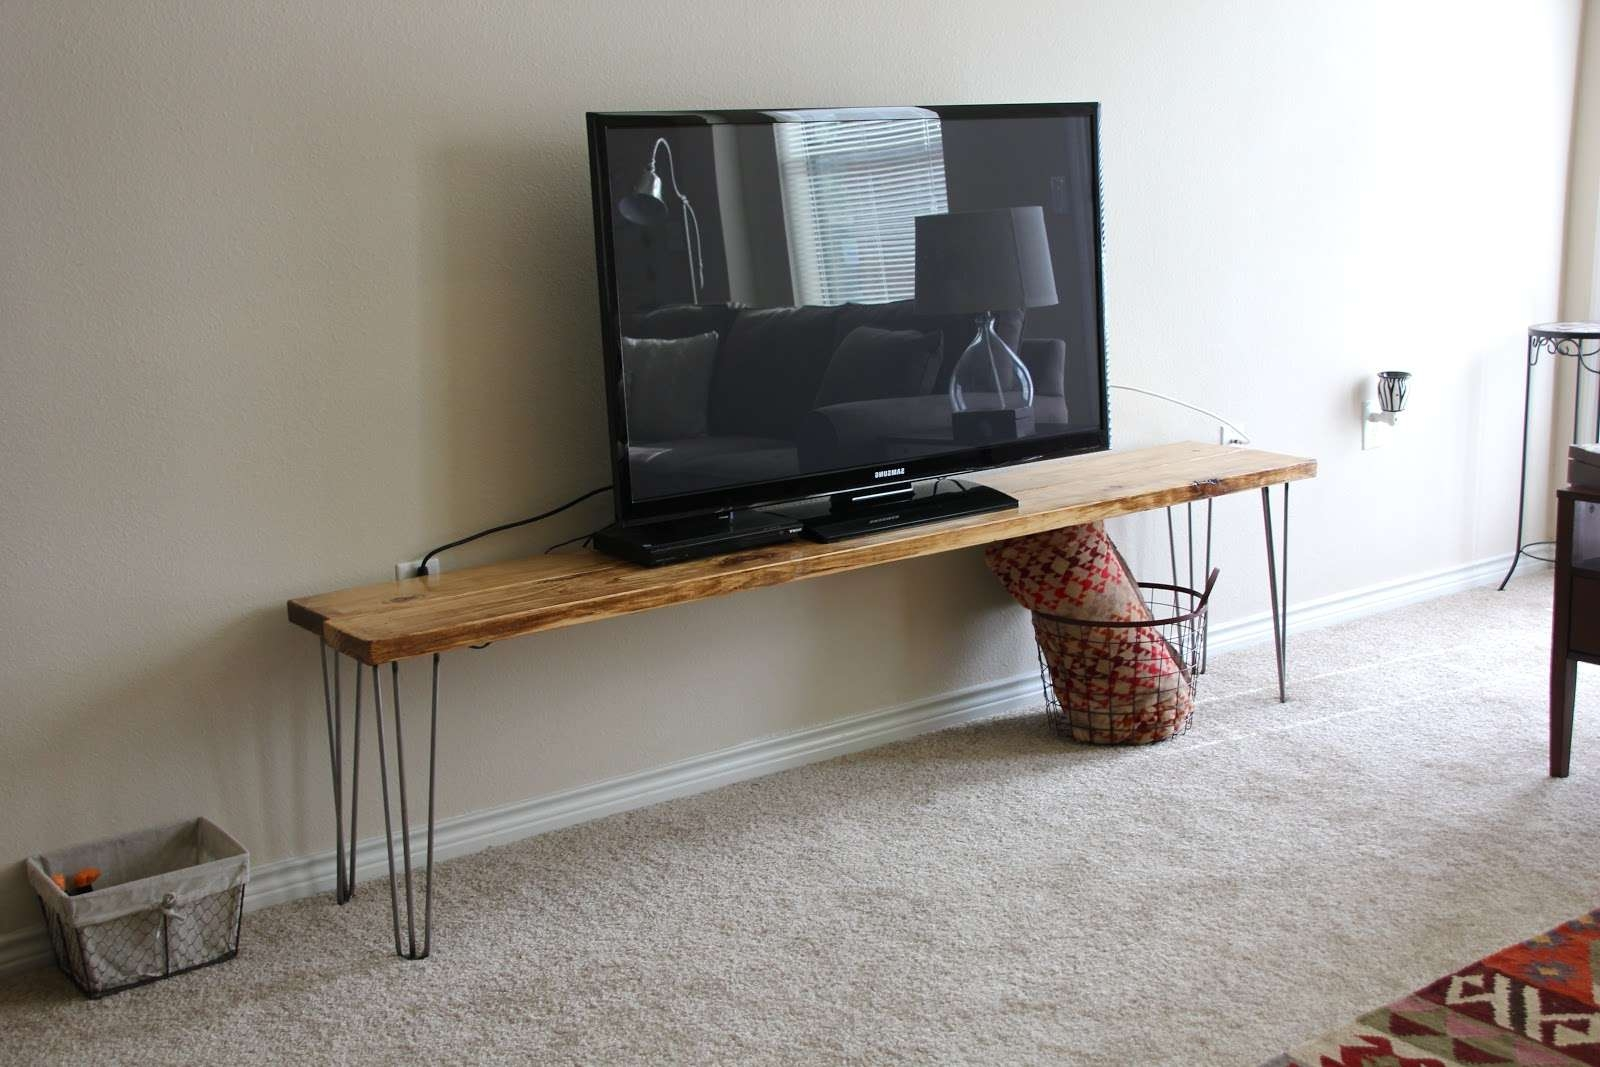 Cool Diy Narrow Wood Industrial Tv Stands With Hairpin Legs Ideas Regarding Hairpin Leg Tv Stands (View 3 of 15)